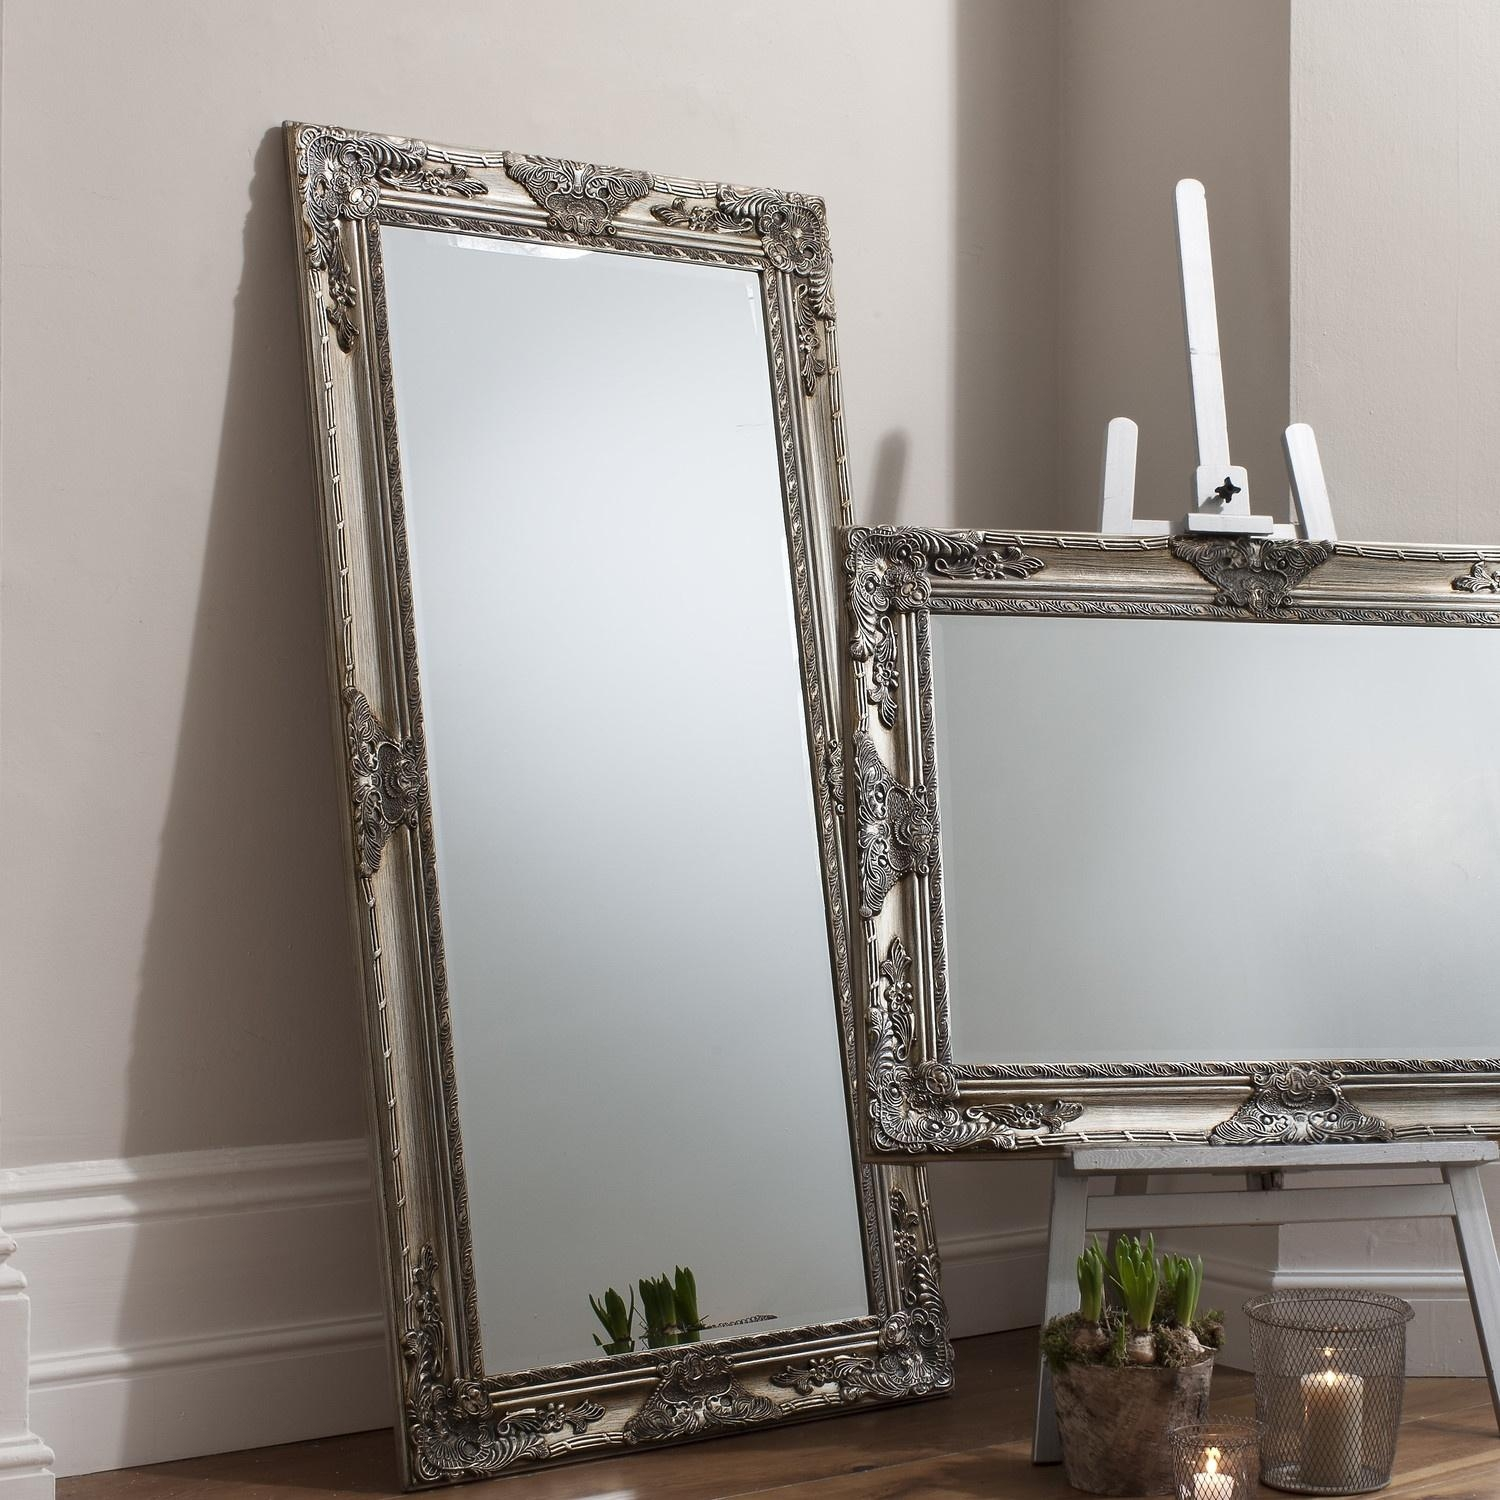 Flooring : Extra Large Floor Standing Mirrors Inside Extra Large Floor Standing Mirrors (View 7 of 20)